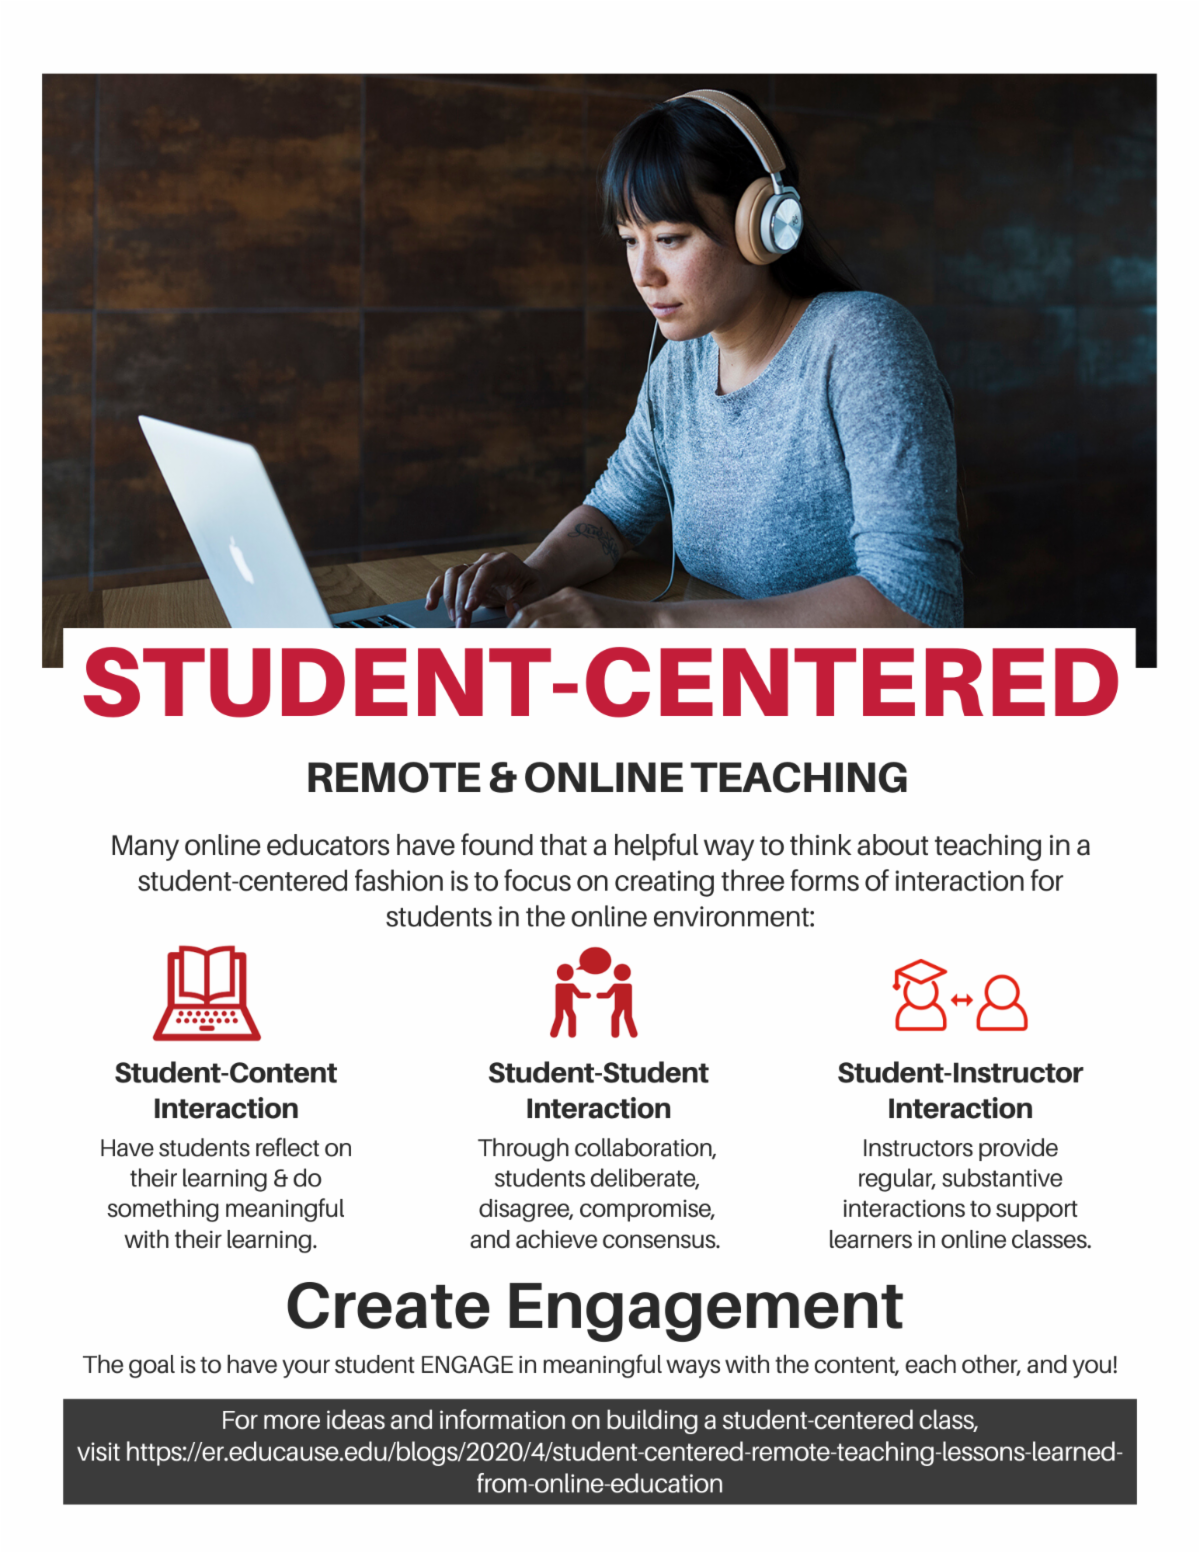 Student centered remote and online teaching tips for faculty click here for more information